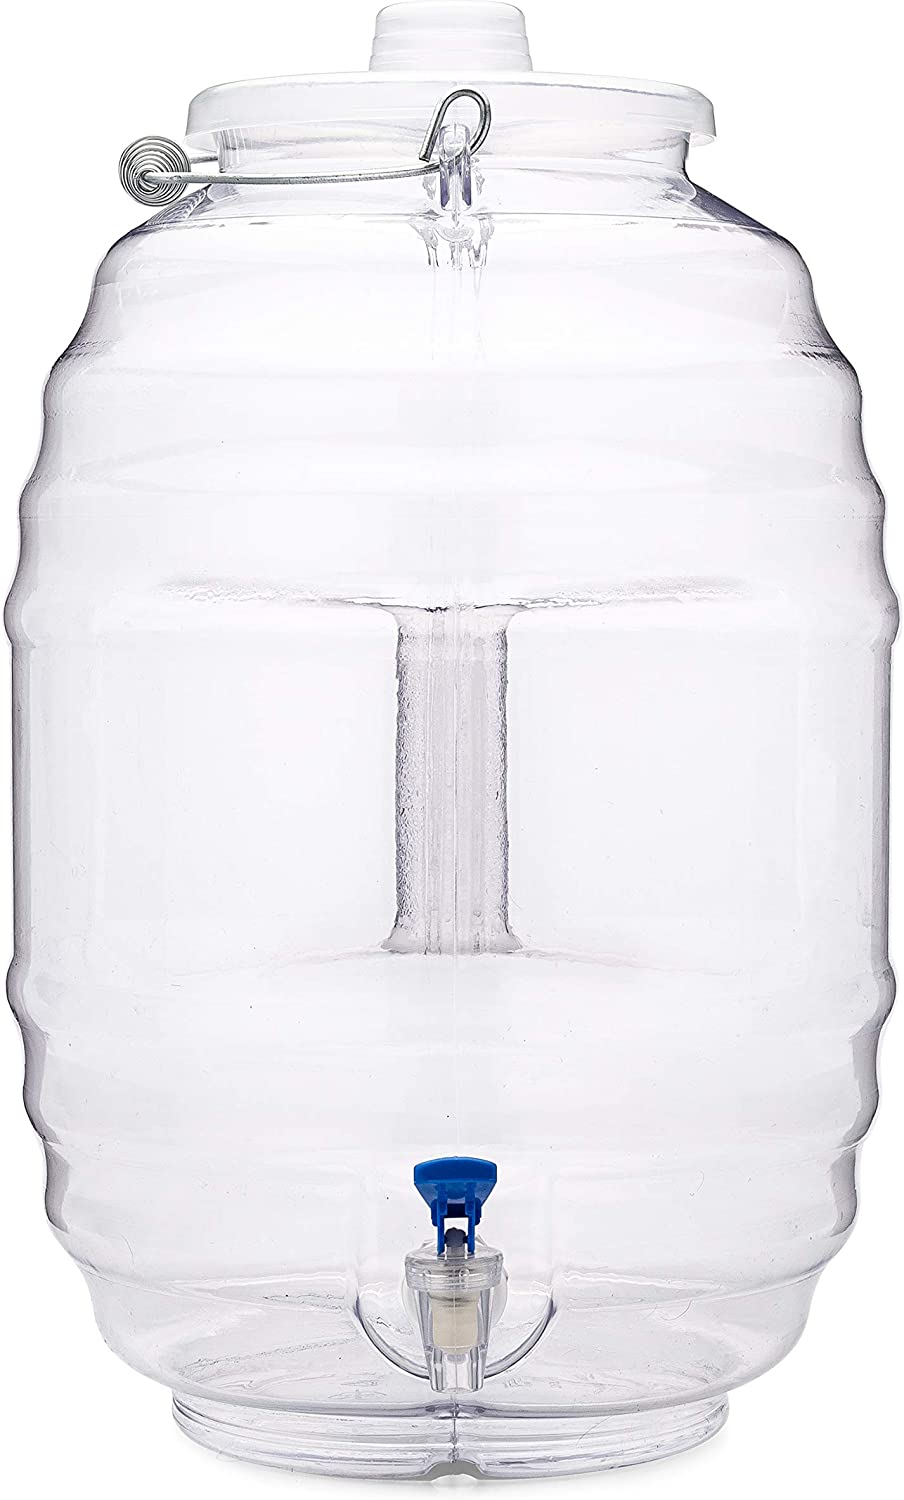 CHAMPS 5 Gallon Jug with Lid and Spout - Aguas Frescas Vitrolero Plastic Water Container - 5 Gallon Drink Dispenser - Large Beverage Dispenser Ideal for Agua fresca and Juice - Drink Jar Containers